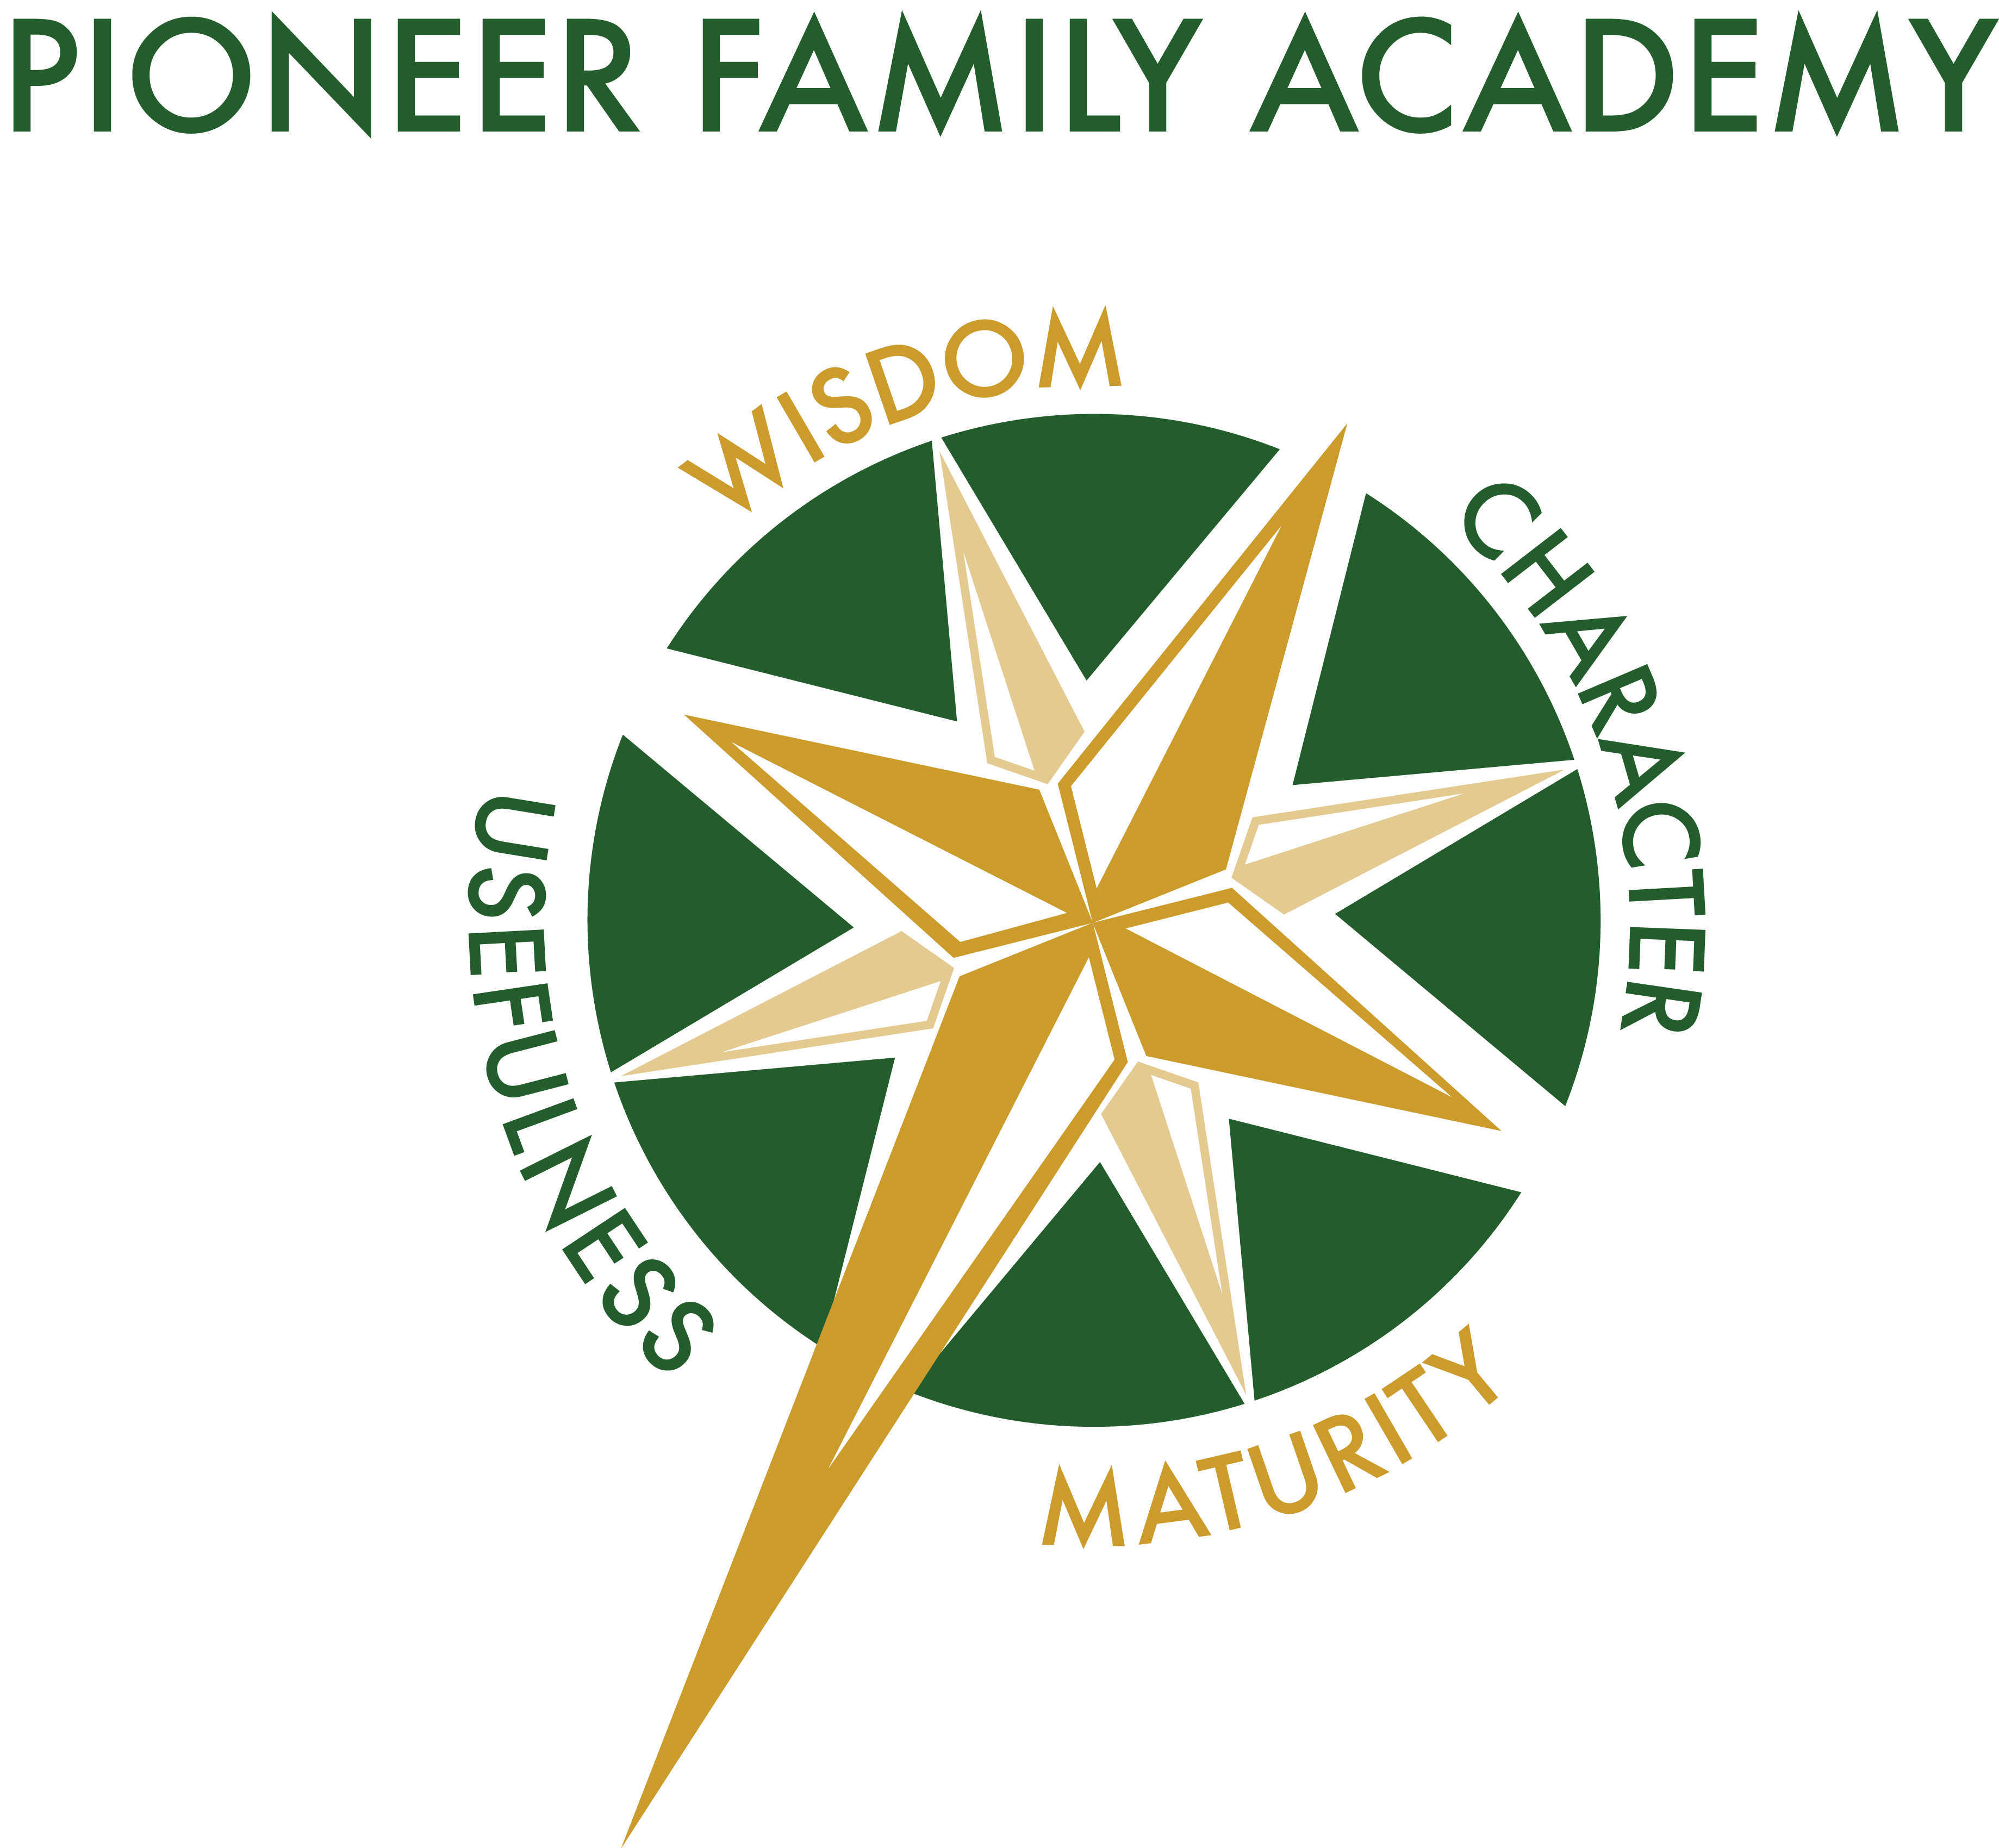 Pioneer Family Academy